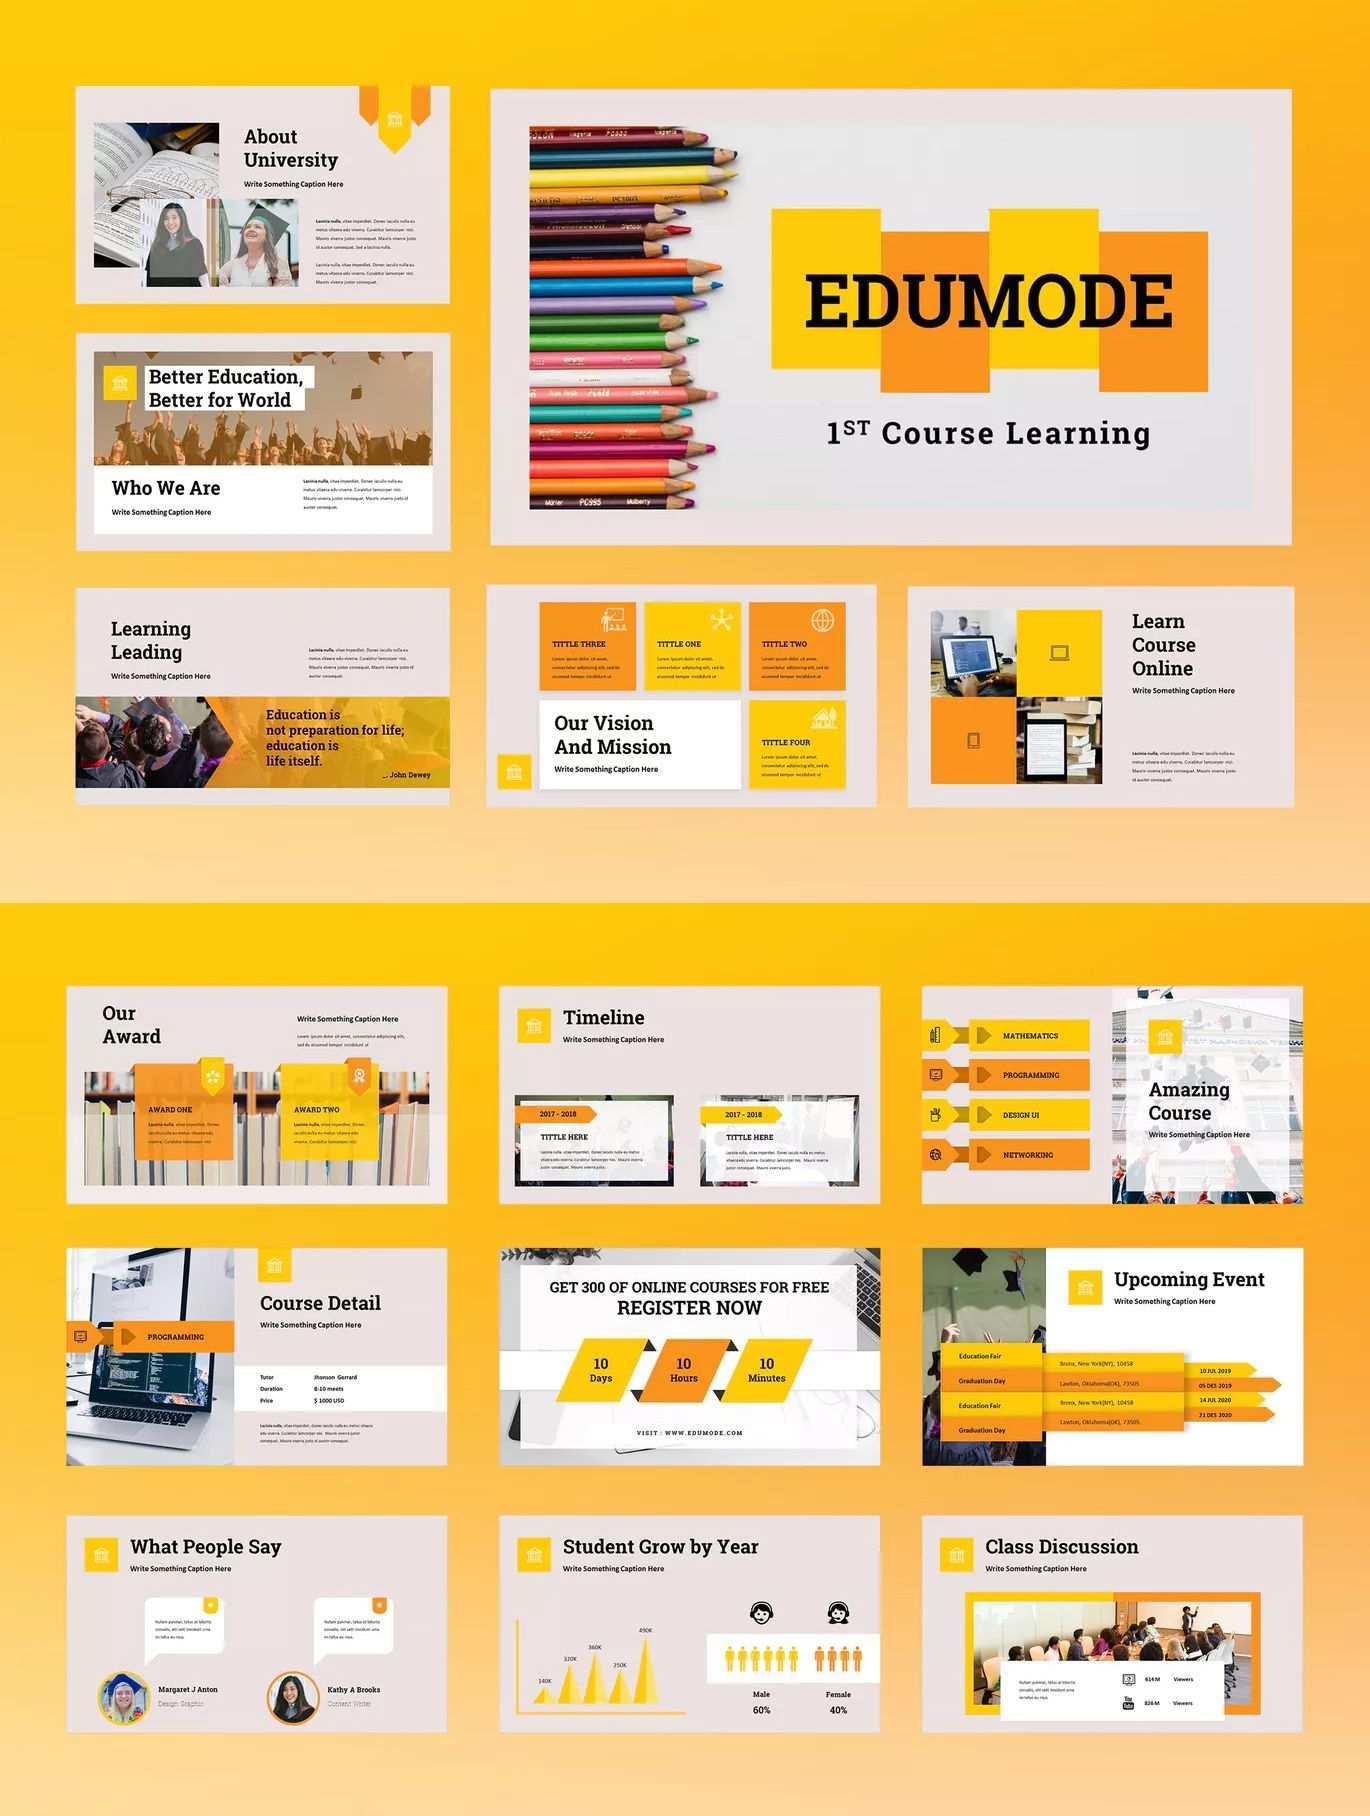 Edumode Education Powerpoint Presentation By Tmint On Envato Elements Free Powerpoint Presentations Simple Powerpoint Templates Powerpoint Presentation Templates